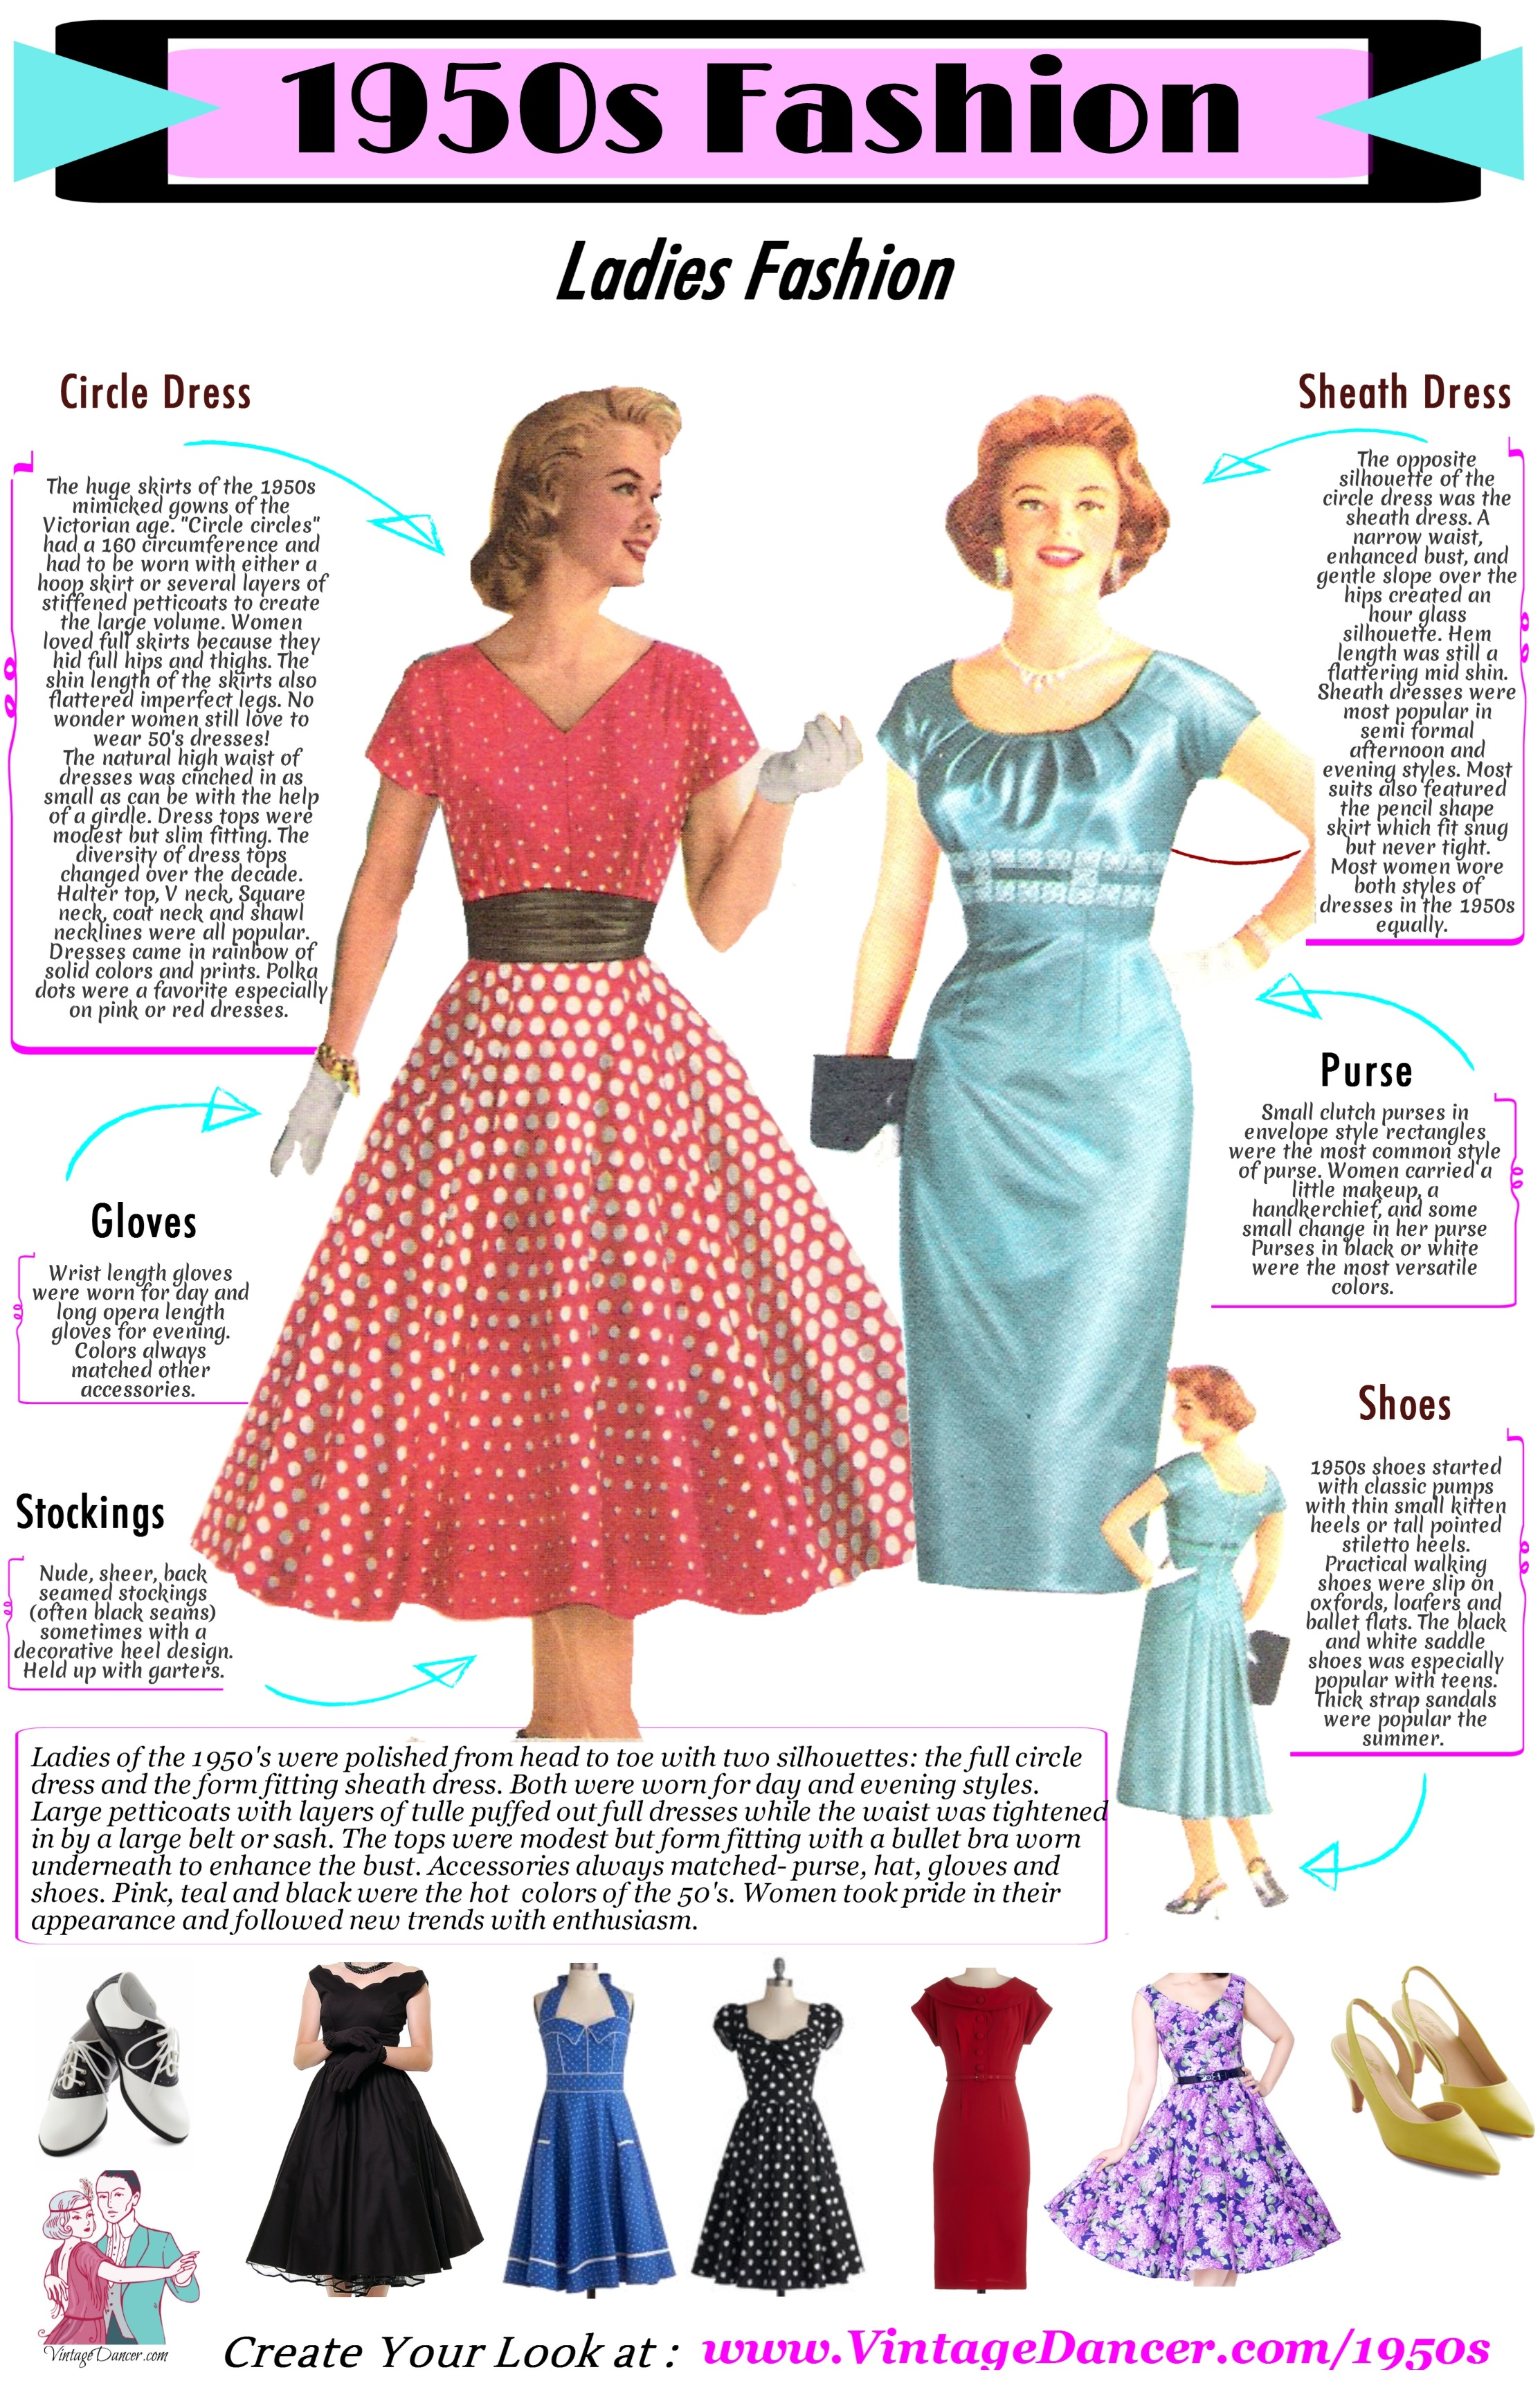 What Did Women Wear In The 1950s 1950s Fashion Guide